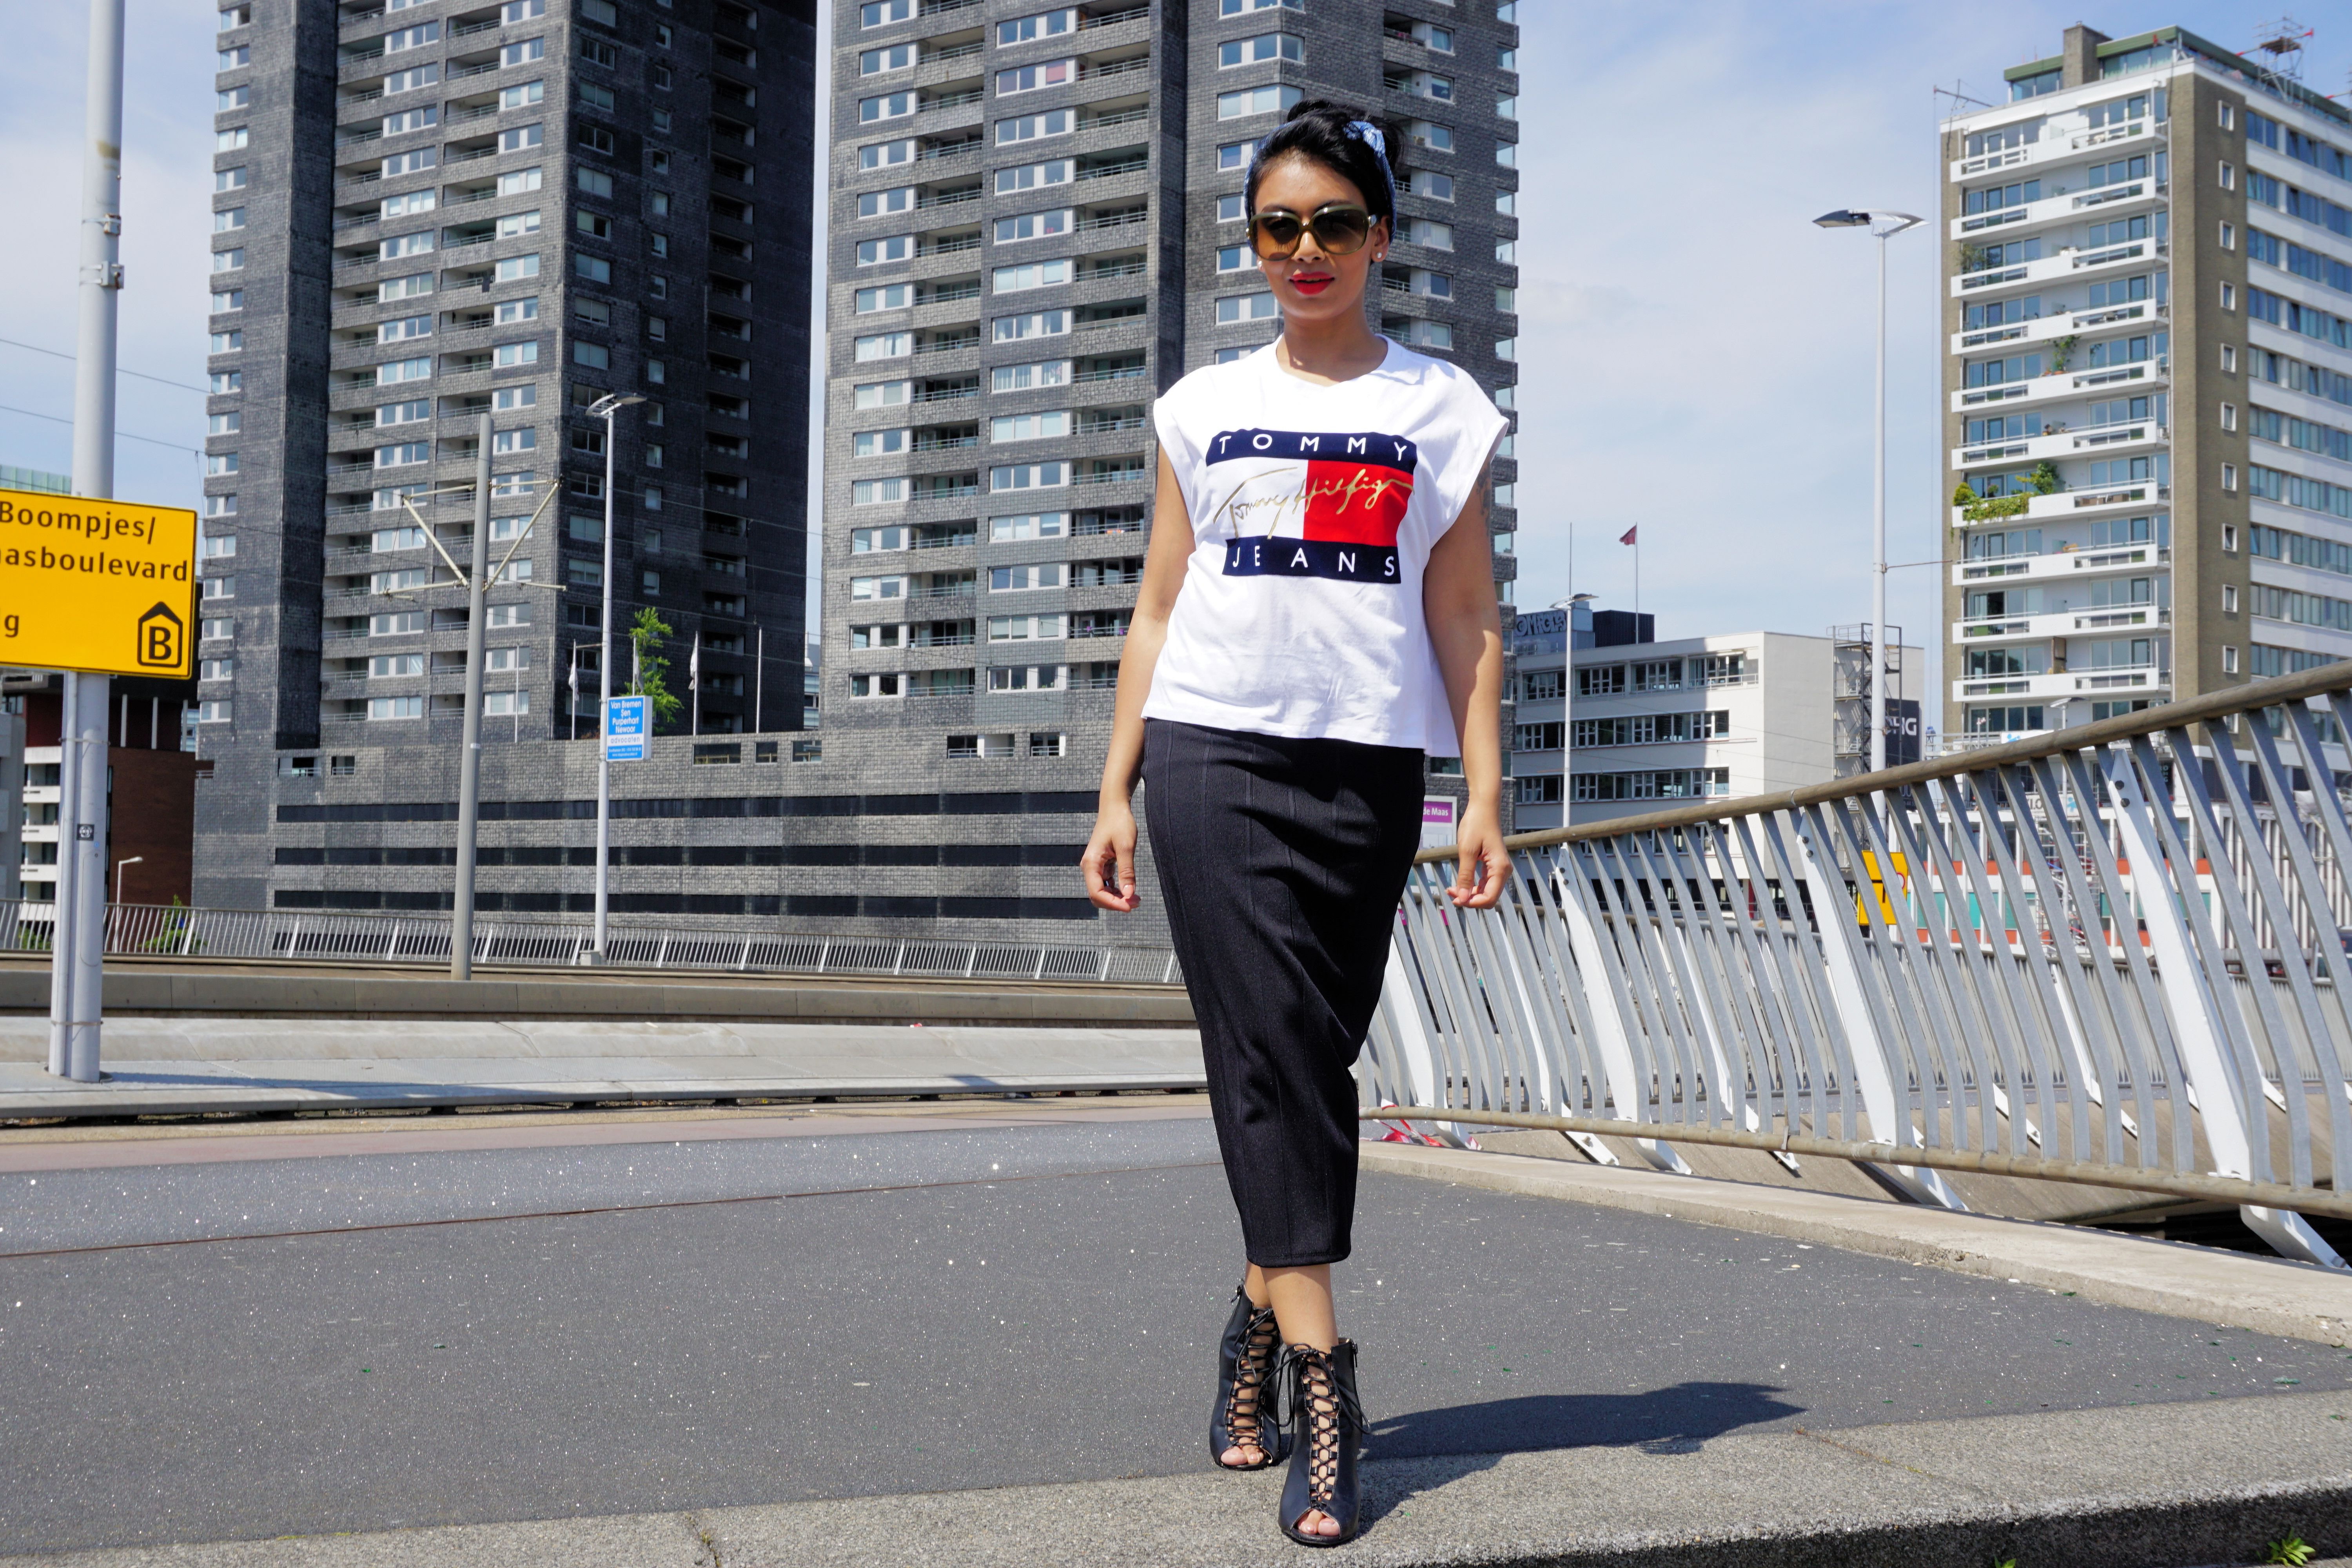 Tommy Jeans 3.0 Capsule Collection Reena Jagram